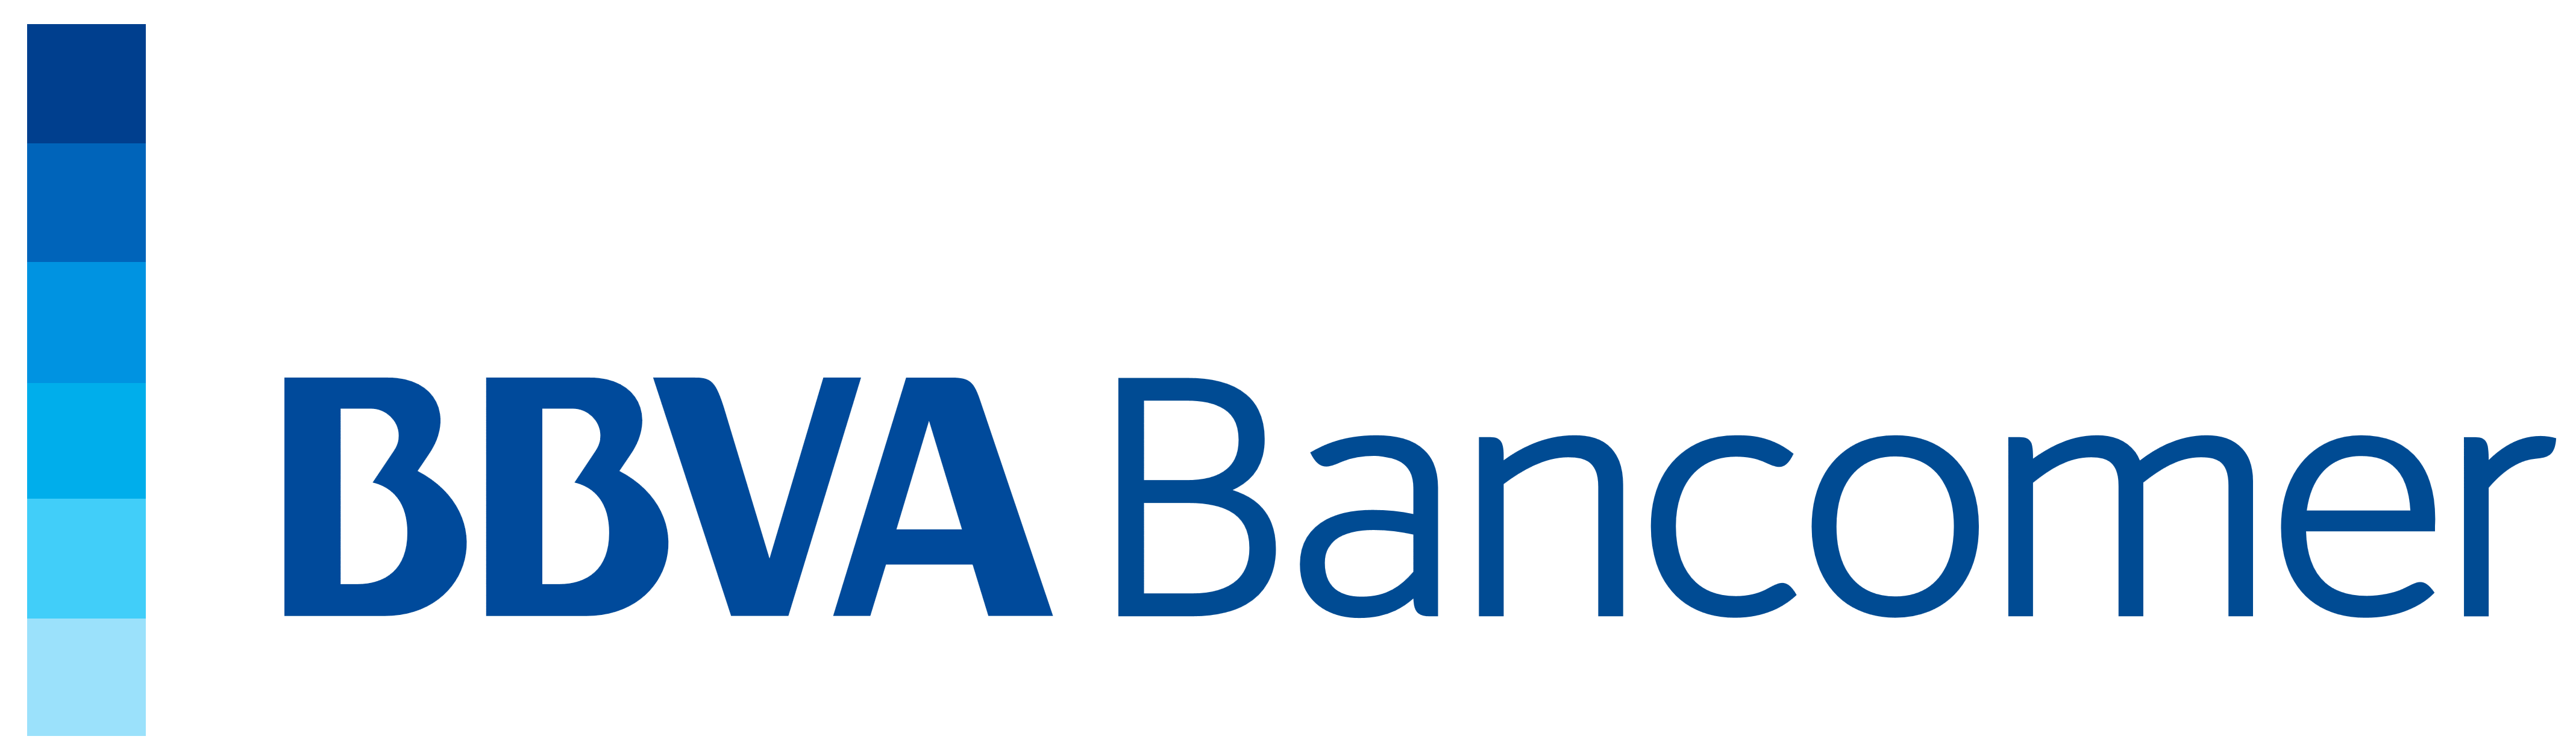 https://logos-download.com/wp-content/uploads/2016/07/BBVA_Bancomer_logo_2